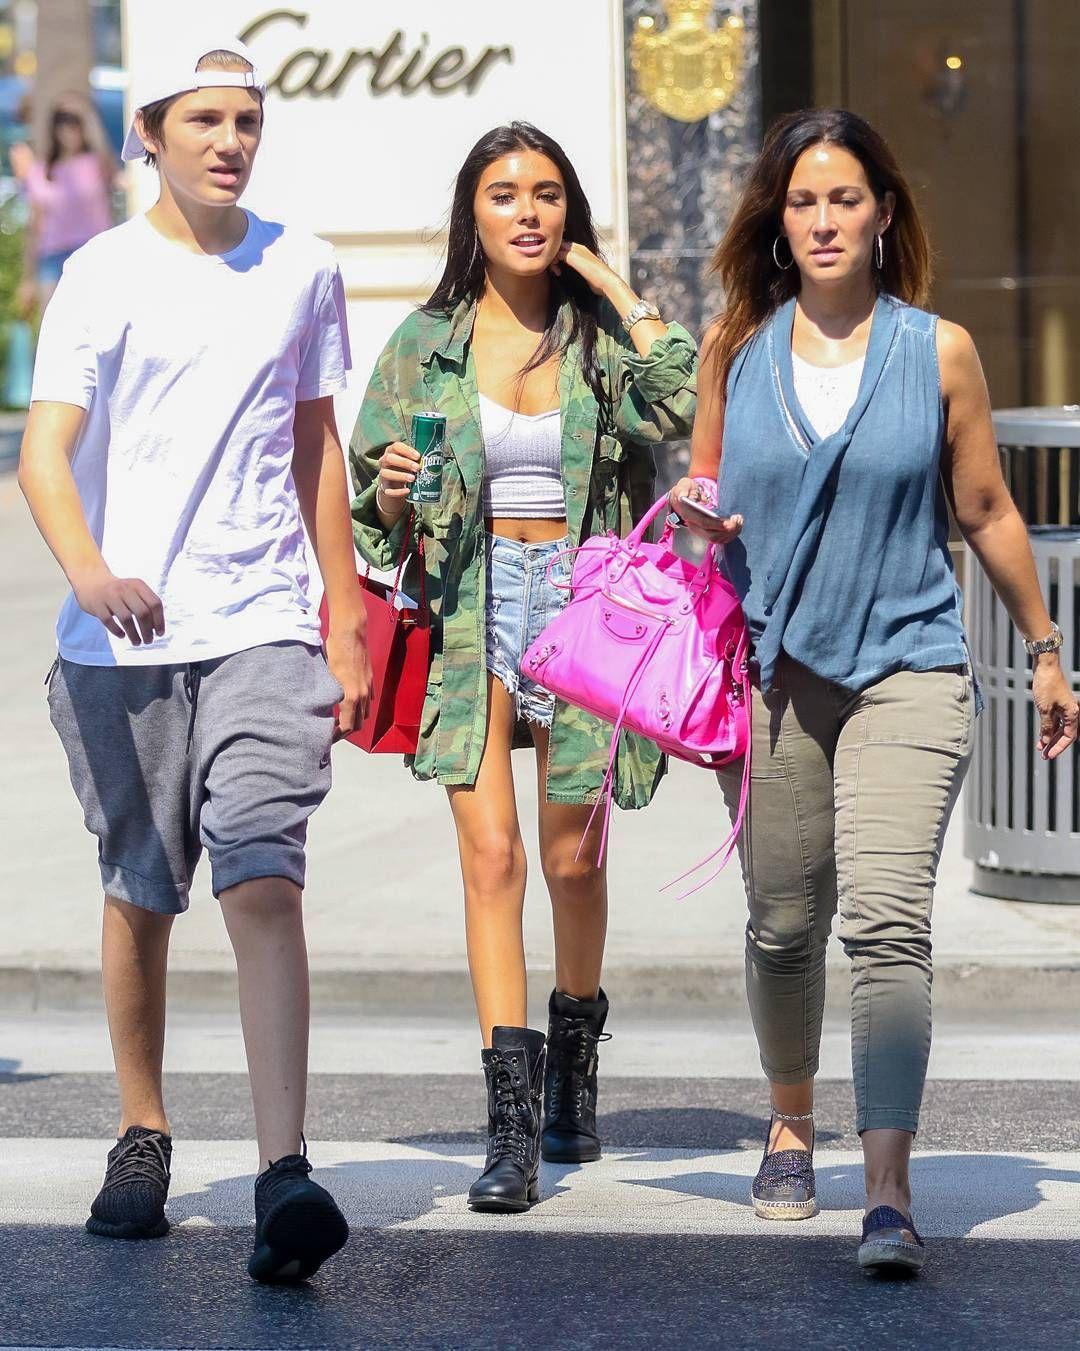 Madison, Tracie, & Ryder- Out and about in Beverly Hills, CA today! #MadisonBeer (August 23rd, 2016)